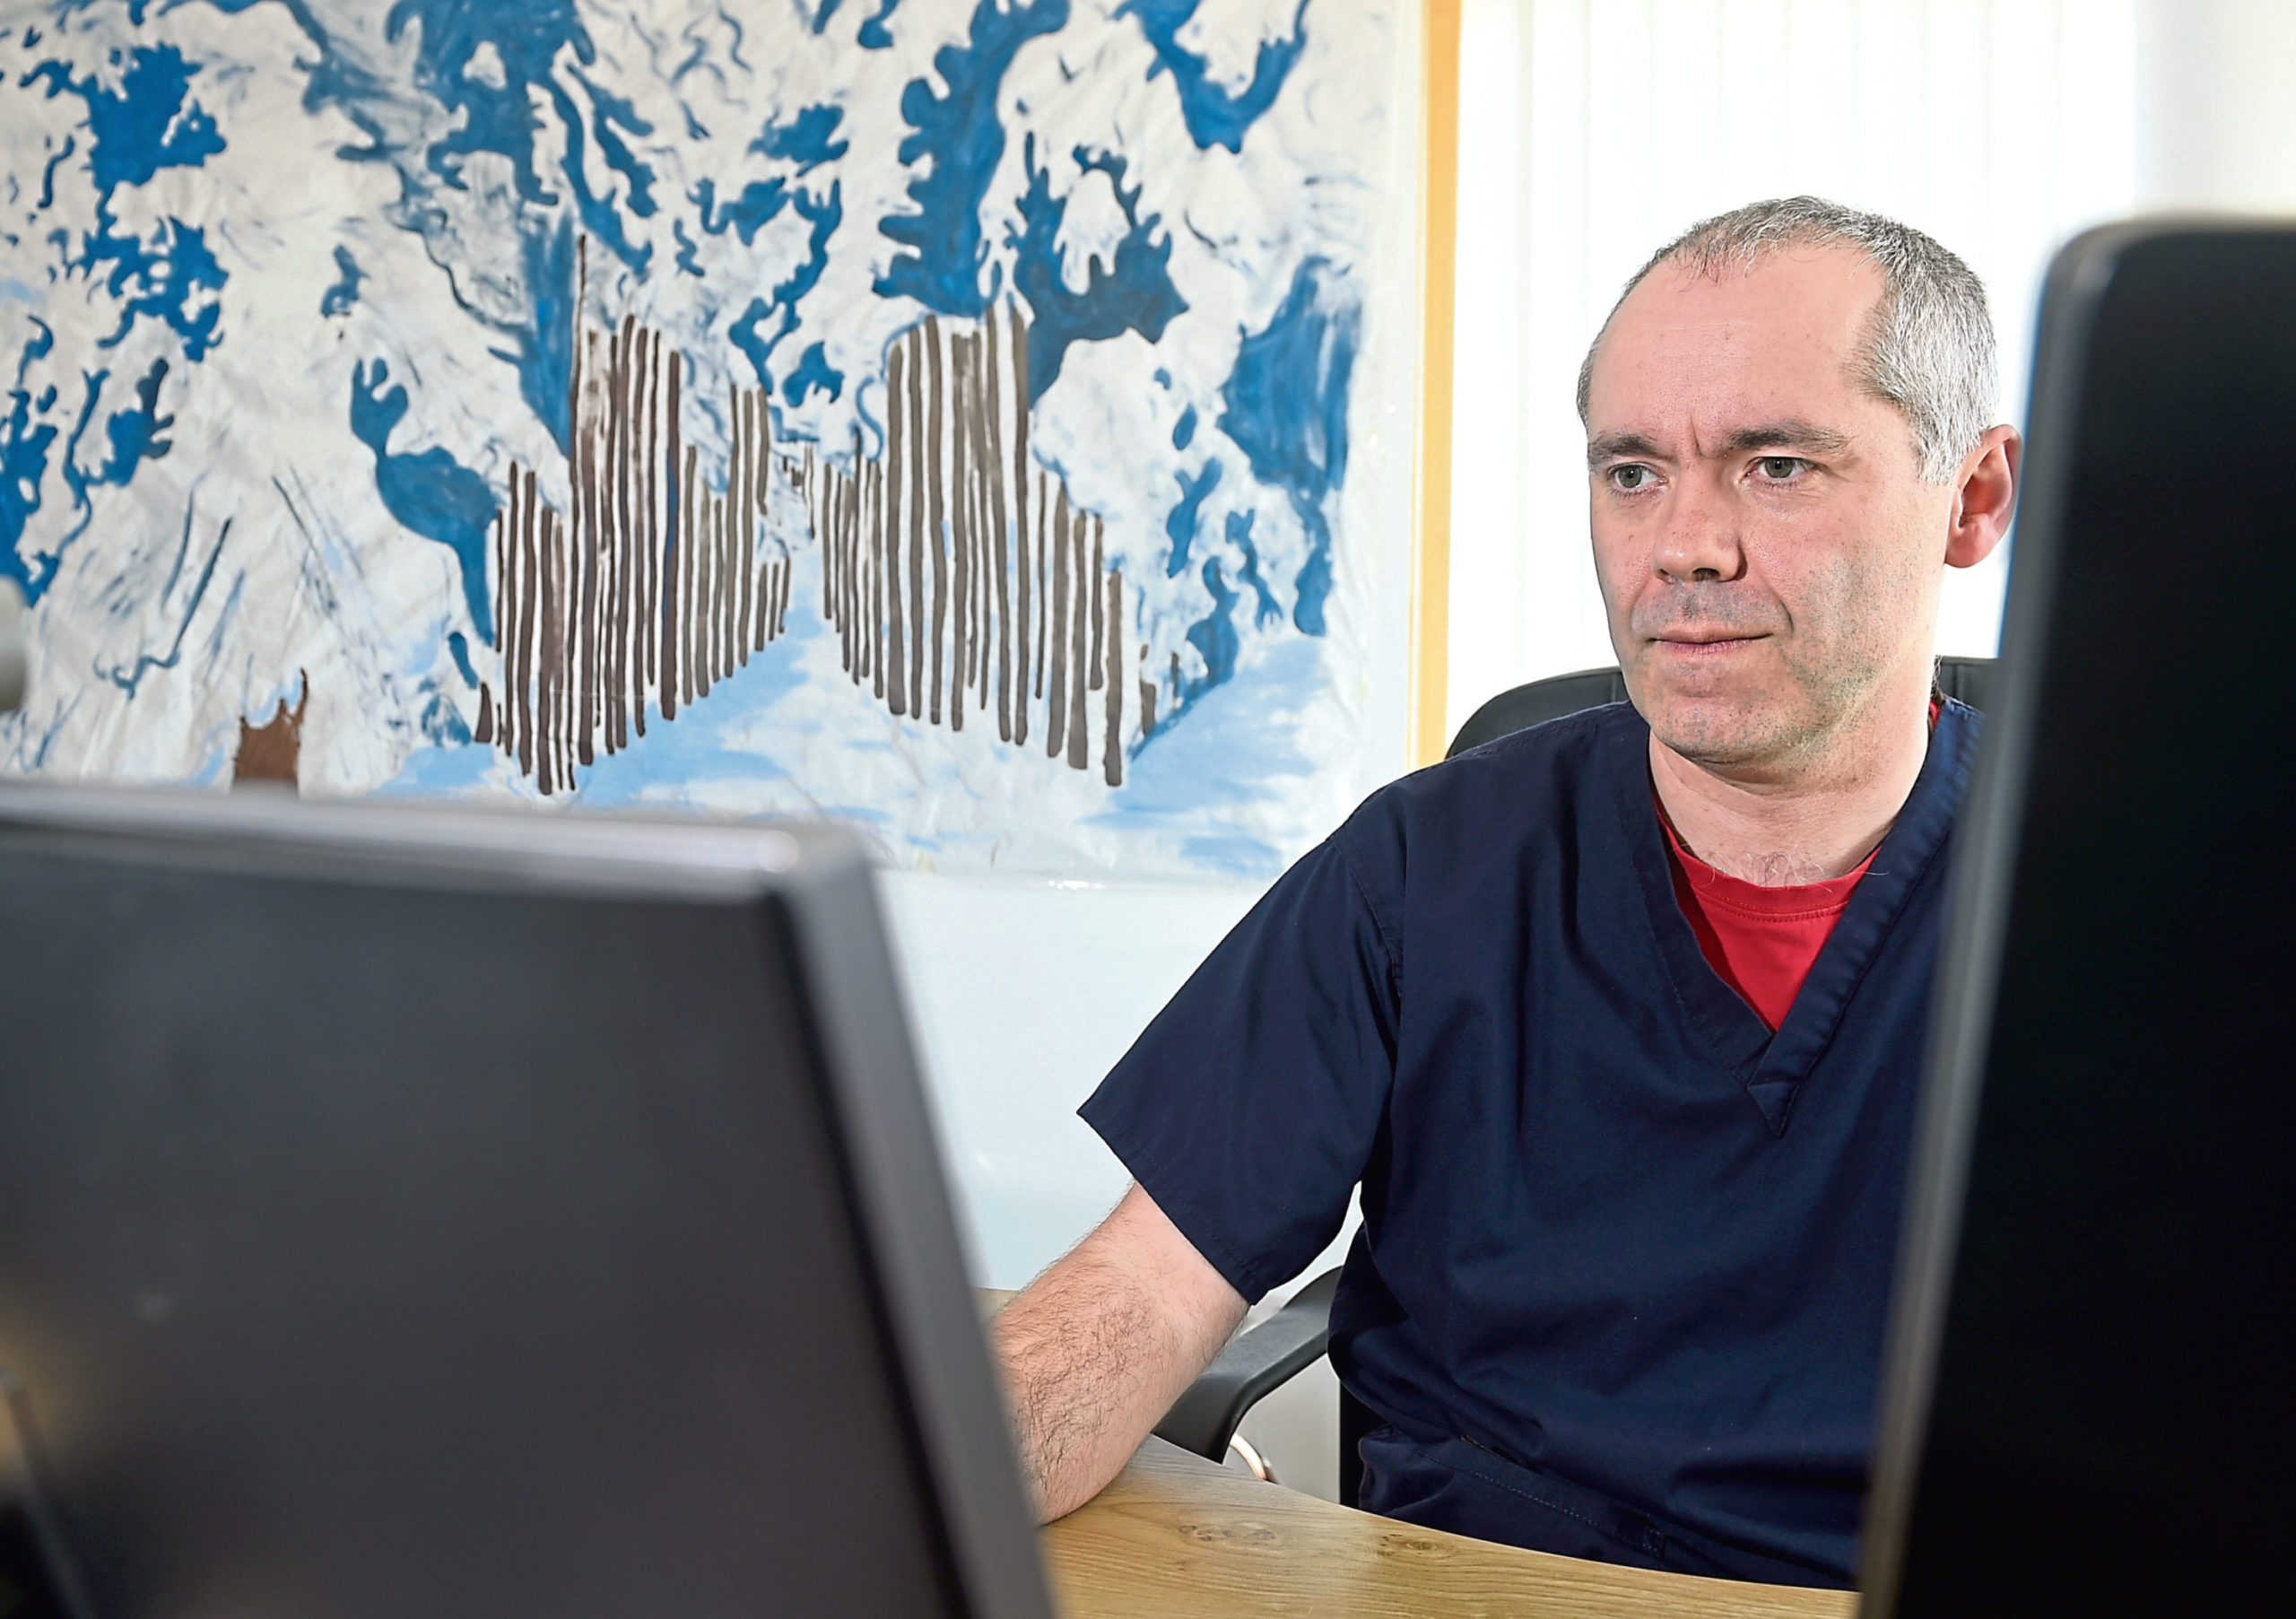 Dr Derek Kelly is a GP at Linkwood Medical Practice in Elgin who has been carrying out GP appointments virtually